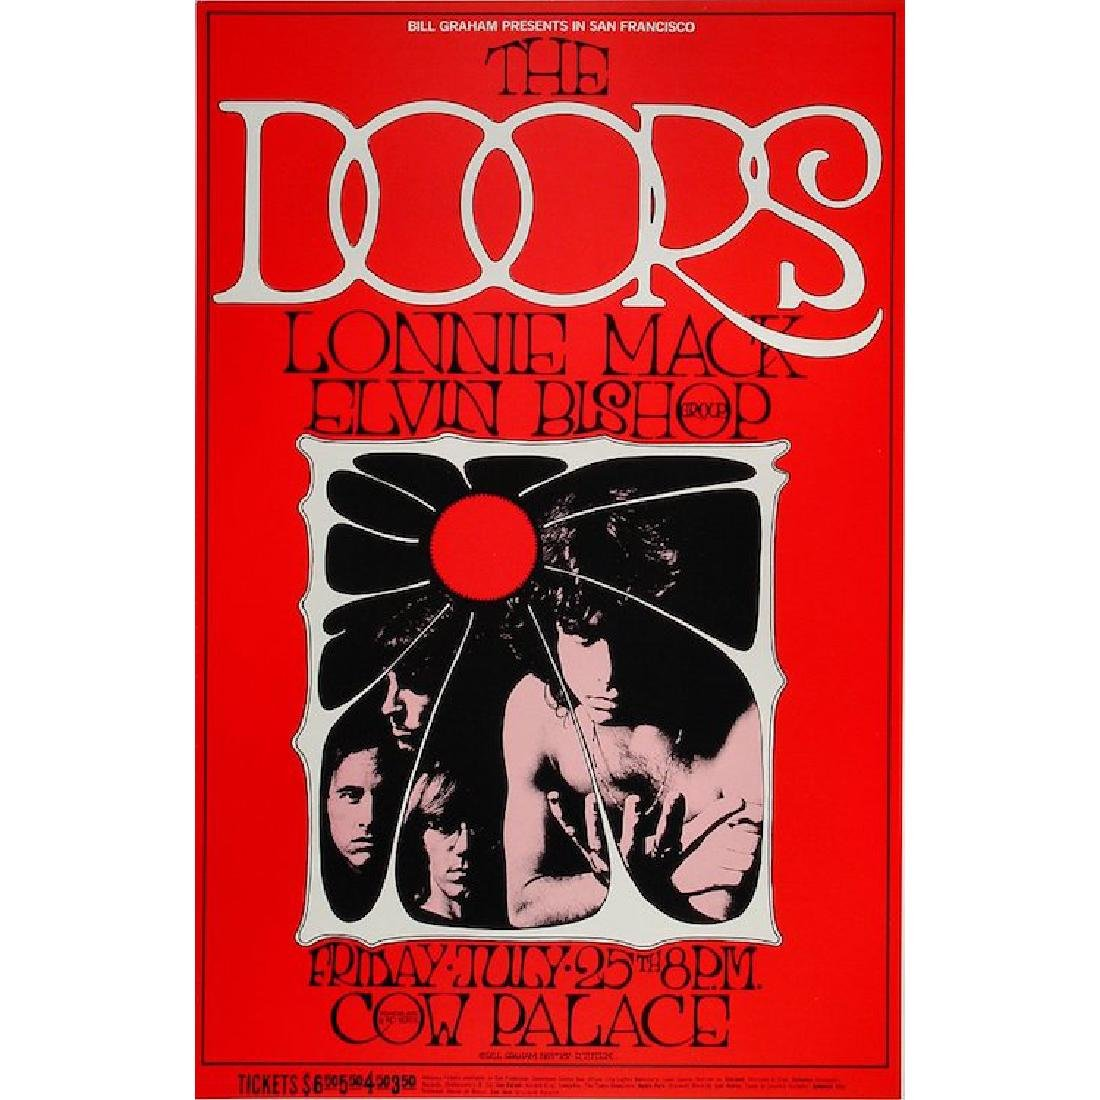 The Doors - 1969 Fillmore Concert Poster